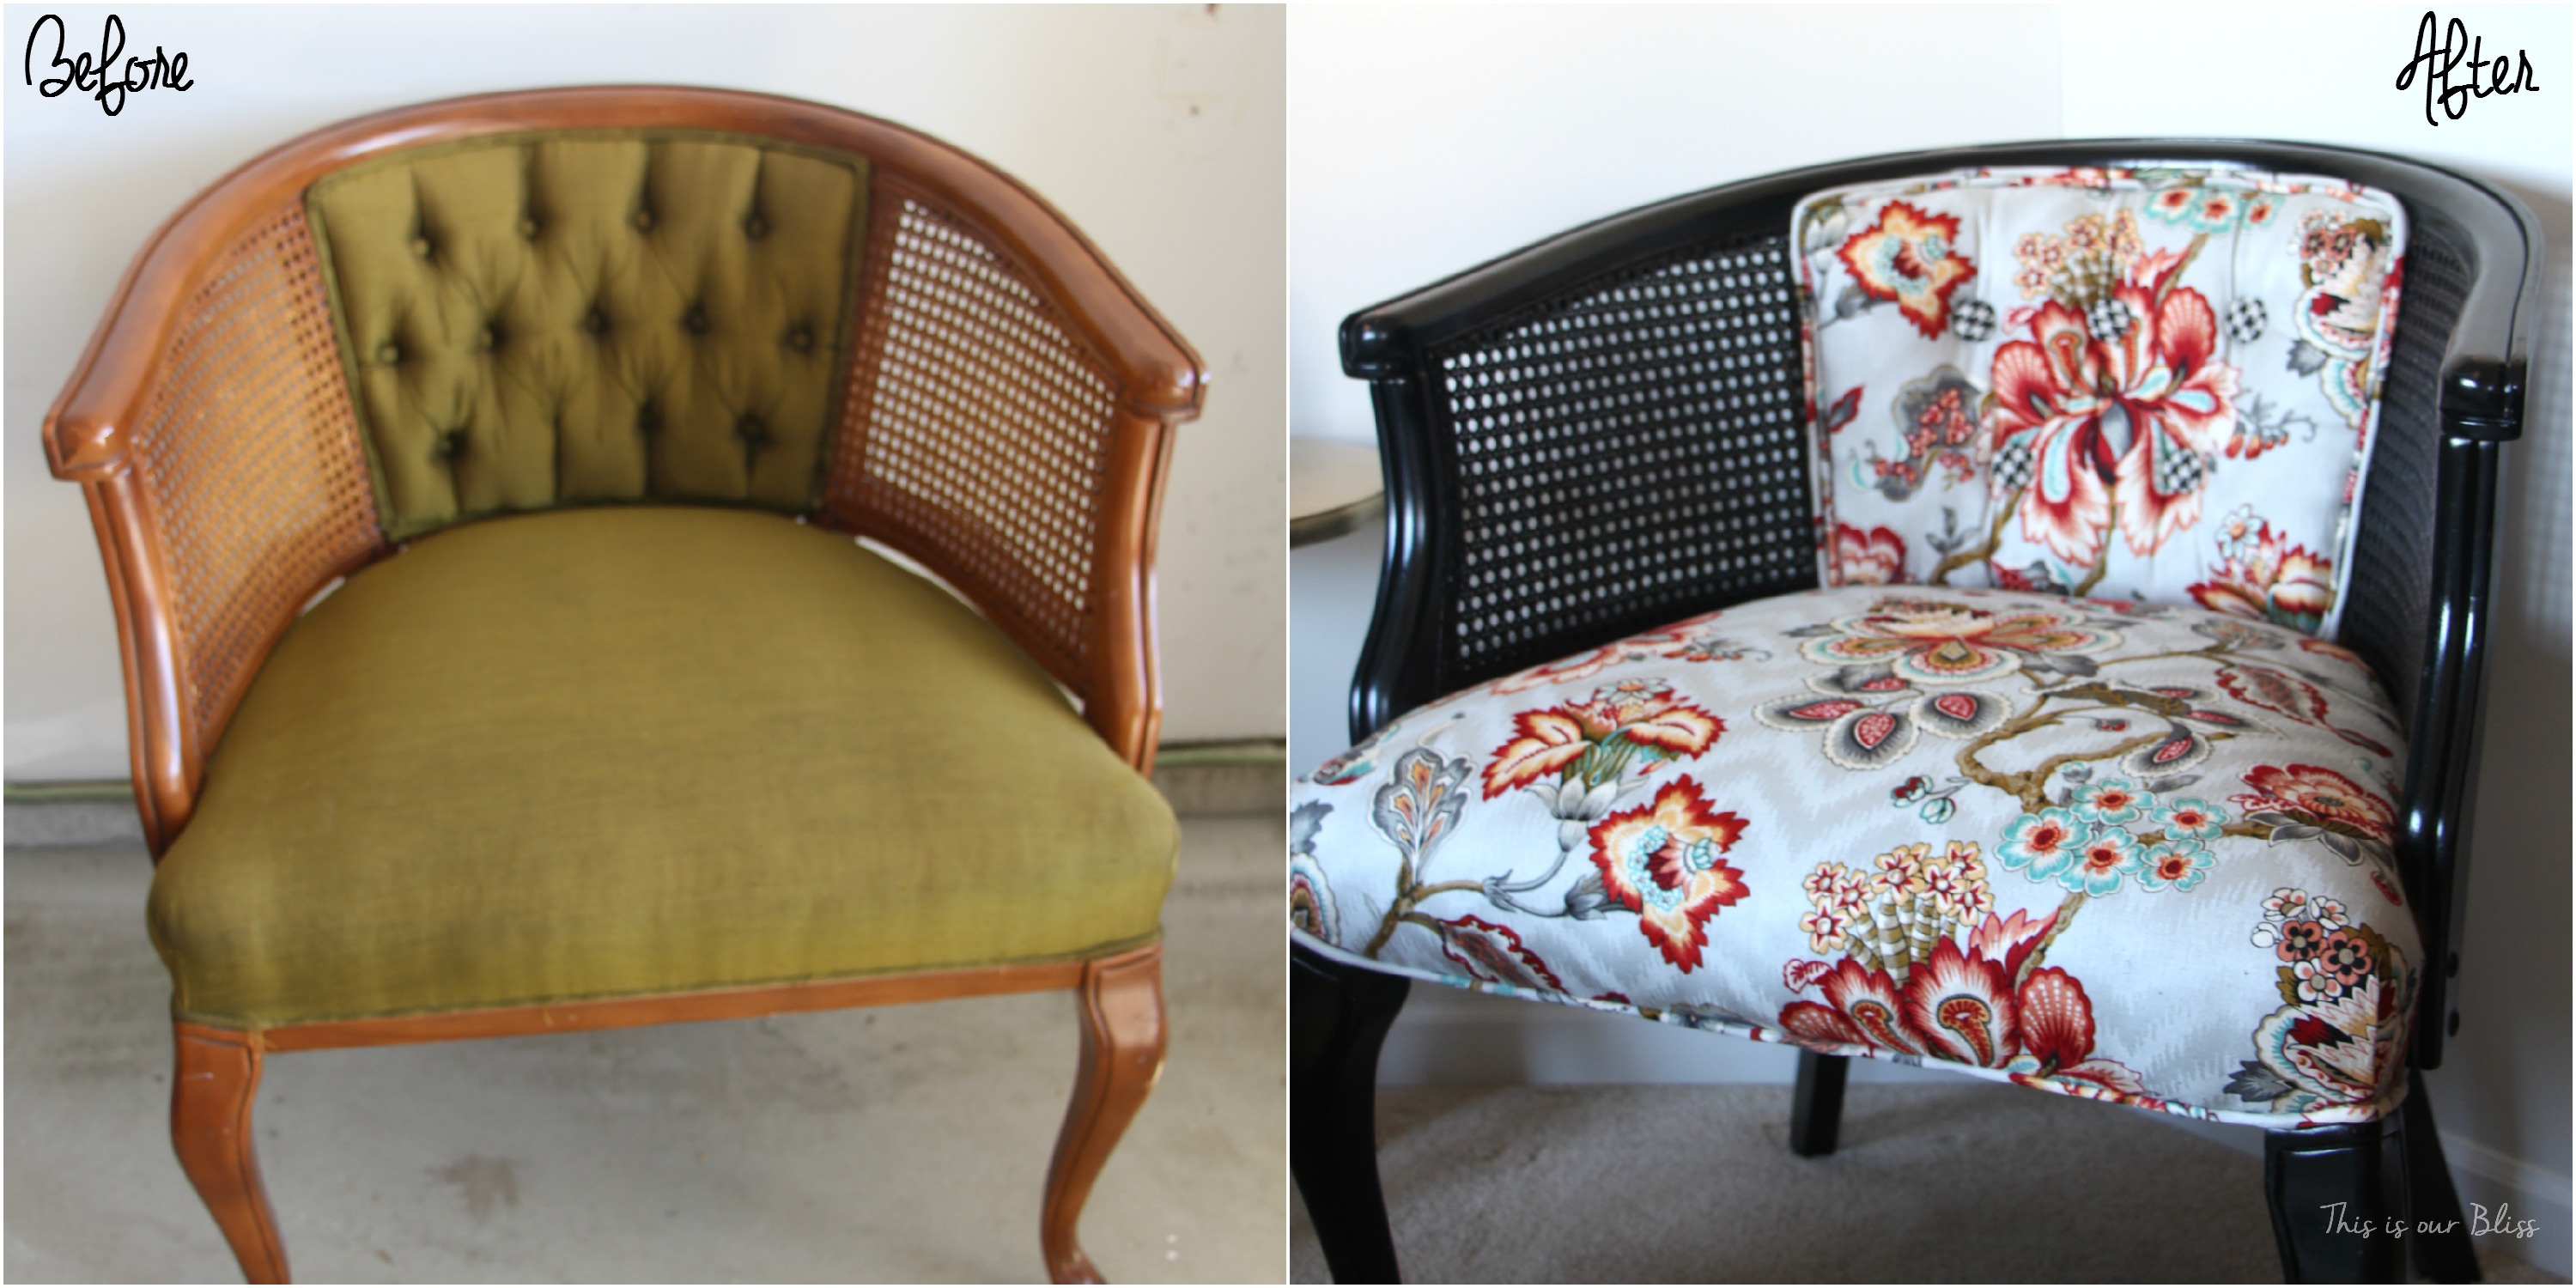 I Reupholstered The Chair In An Upholstery Class That I Took. The Chair Did  Take Me Quite Awhile Given That I Only Devoted A Couple Of Hours Per Week  And I ...